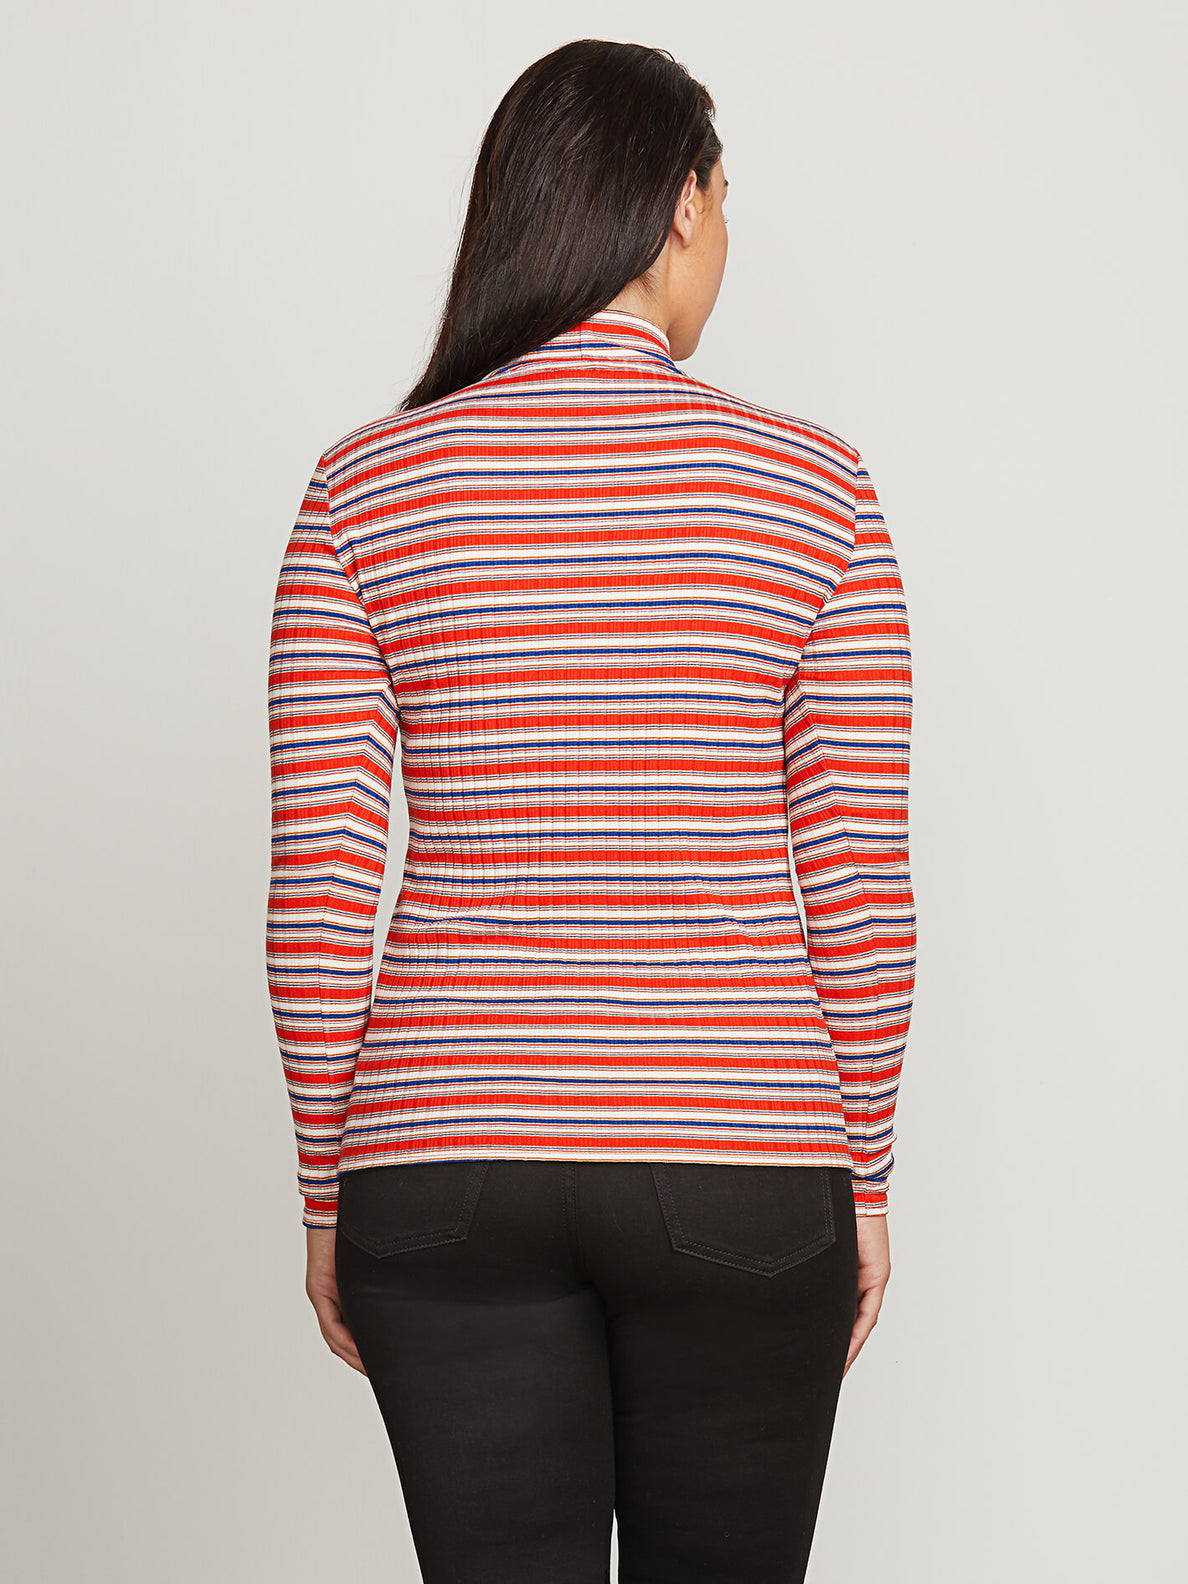 Tail Slide Long Sleeve Top In Tangerine, Back Extended Size View